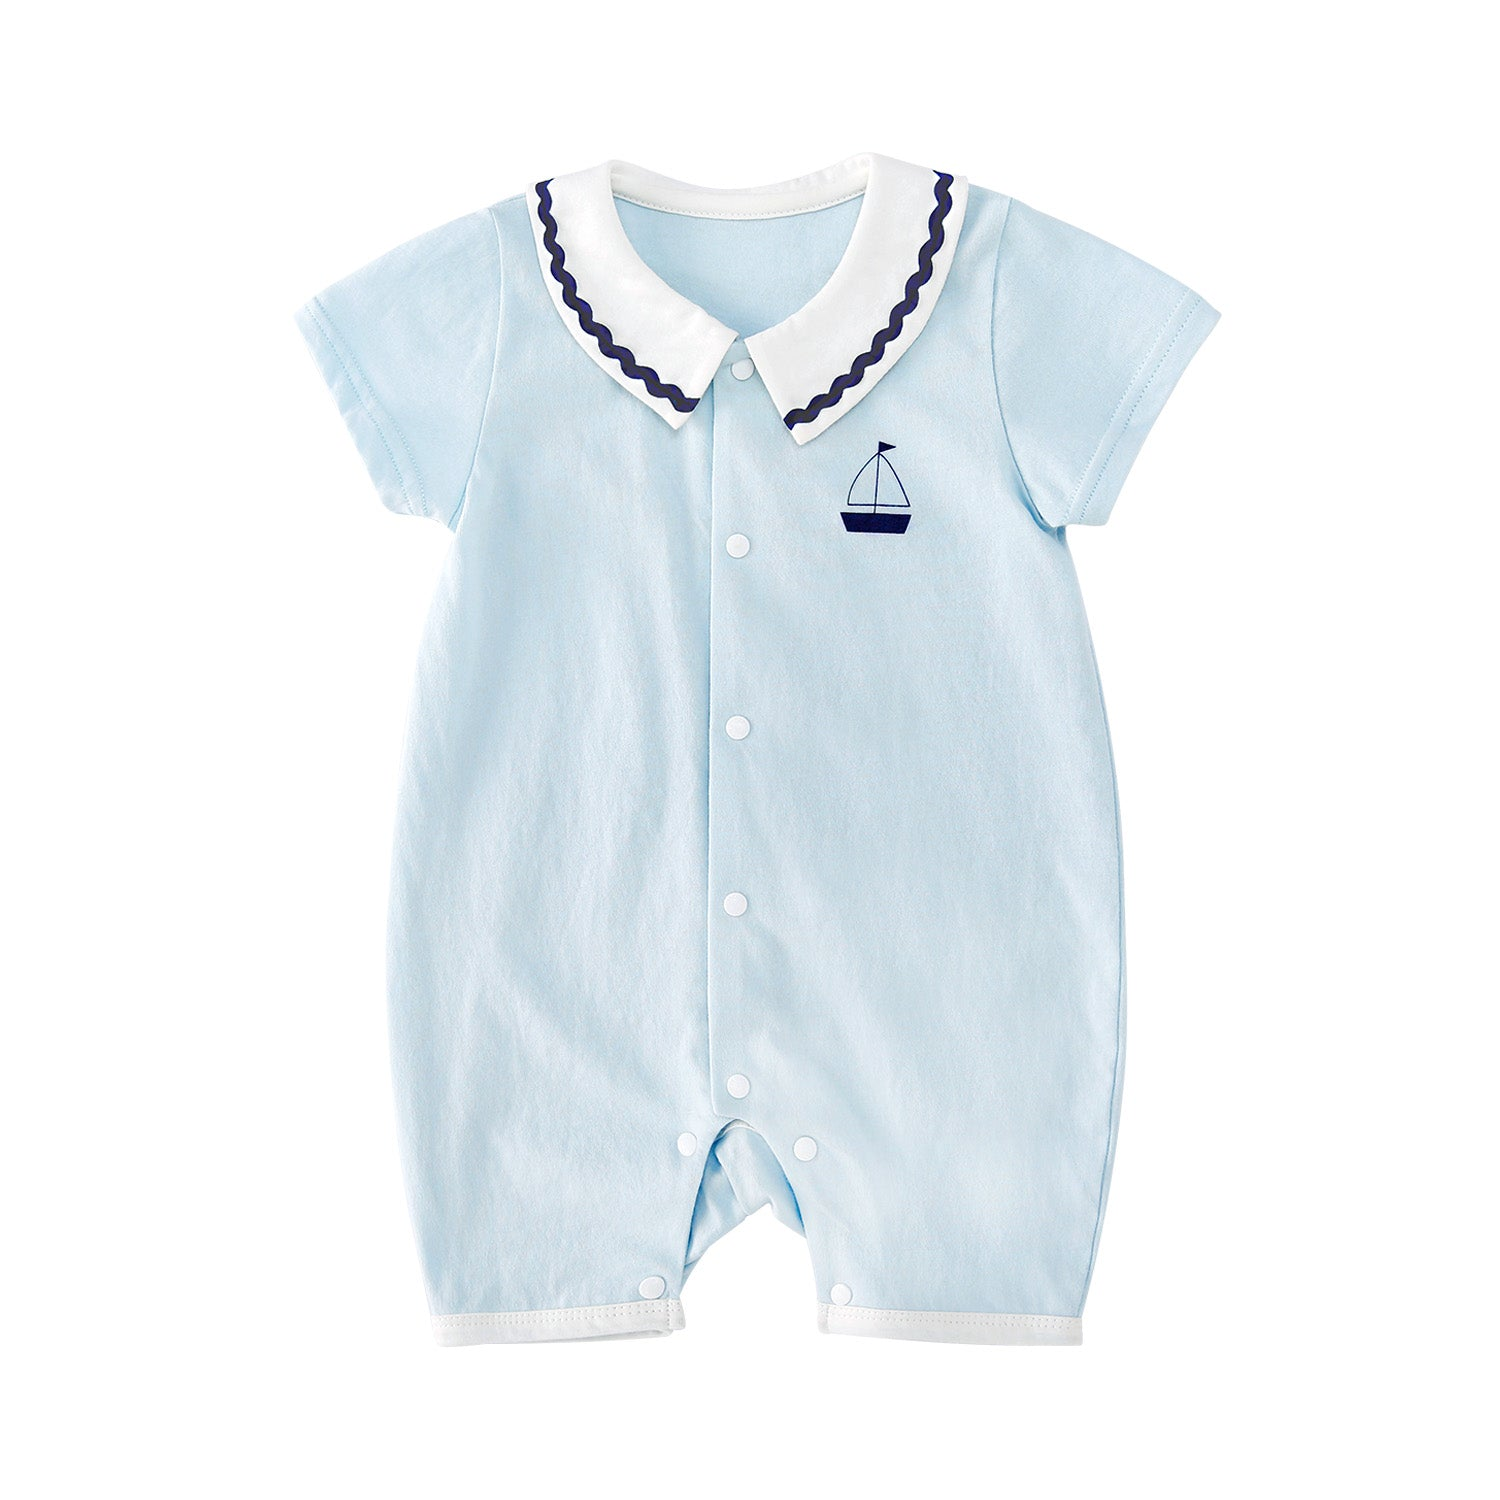 Pureborn Newborn Cotton Sailboat Romper